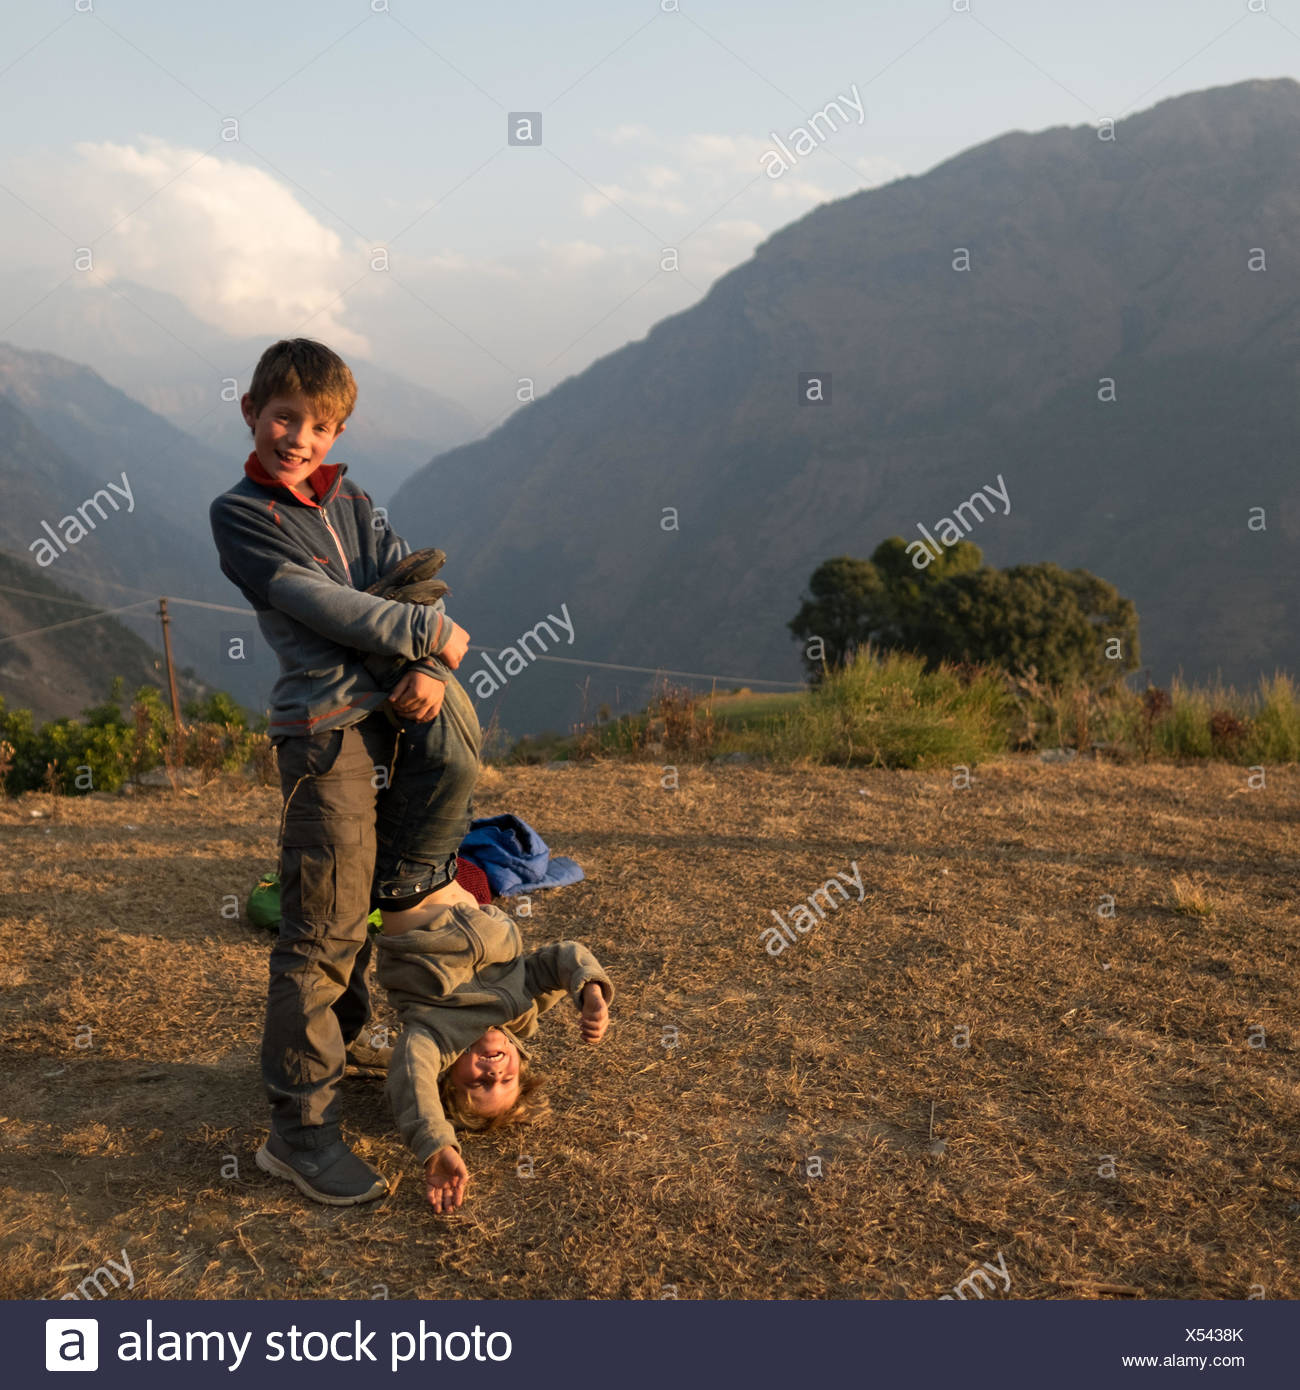 Older brother holds his younger brother upside down. - Stock Image